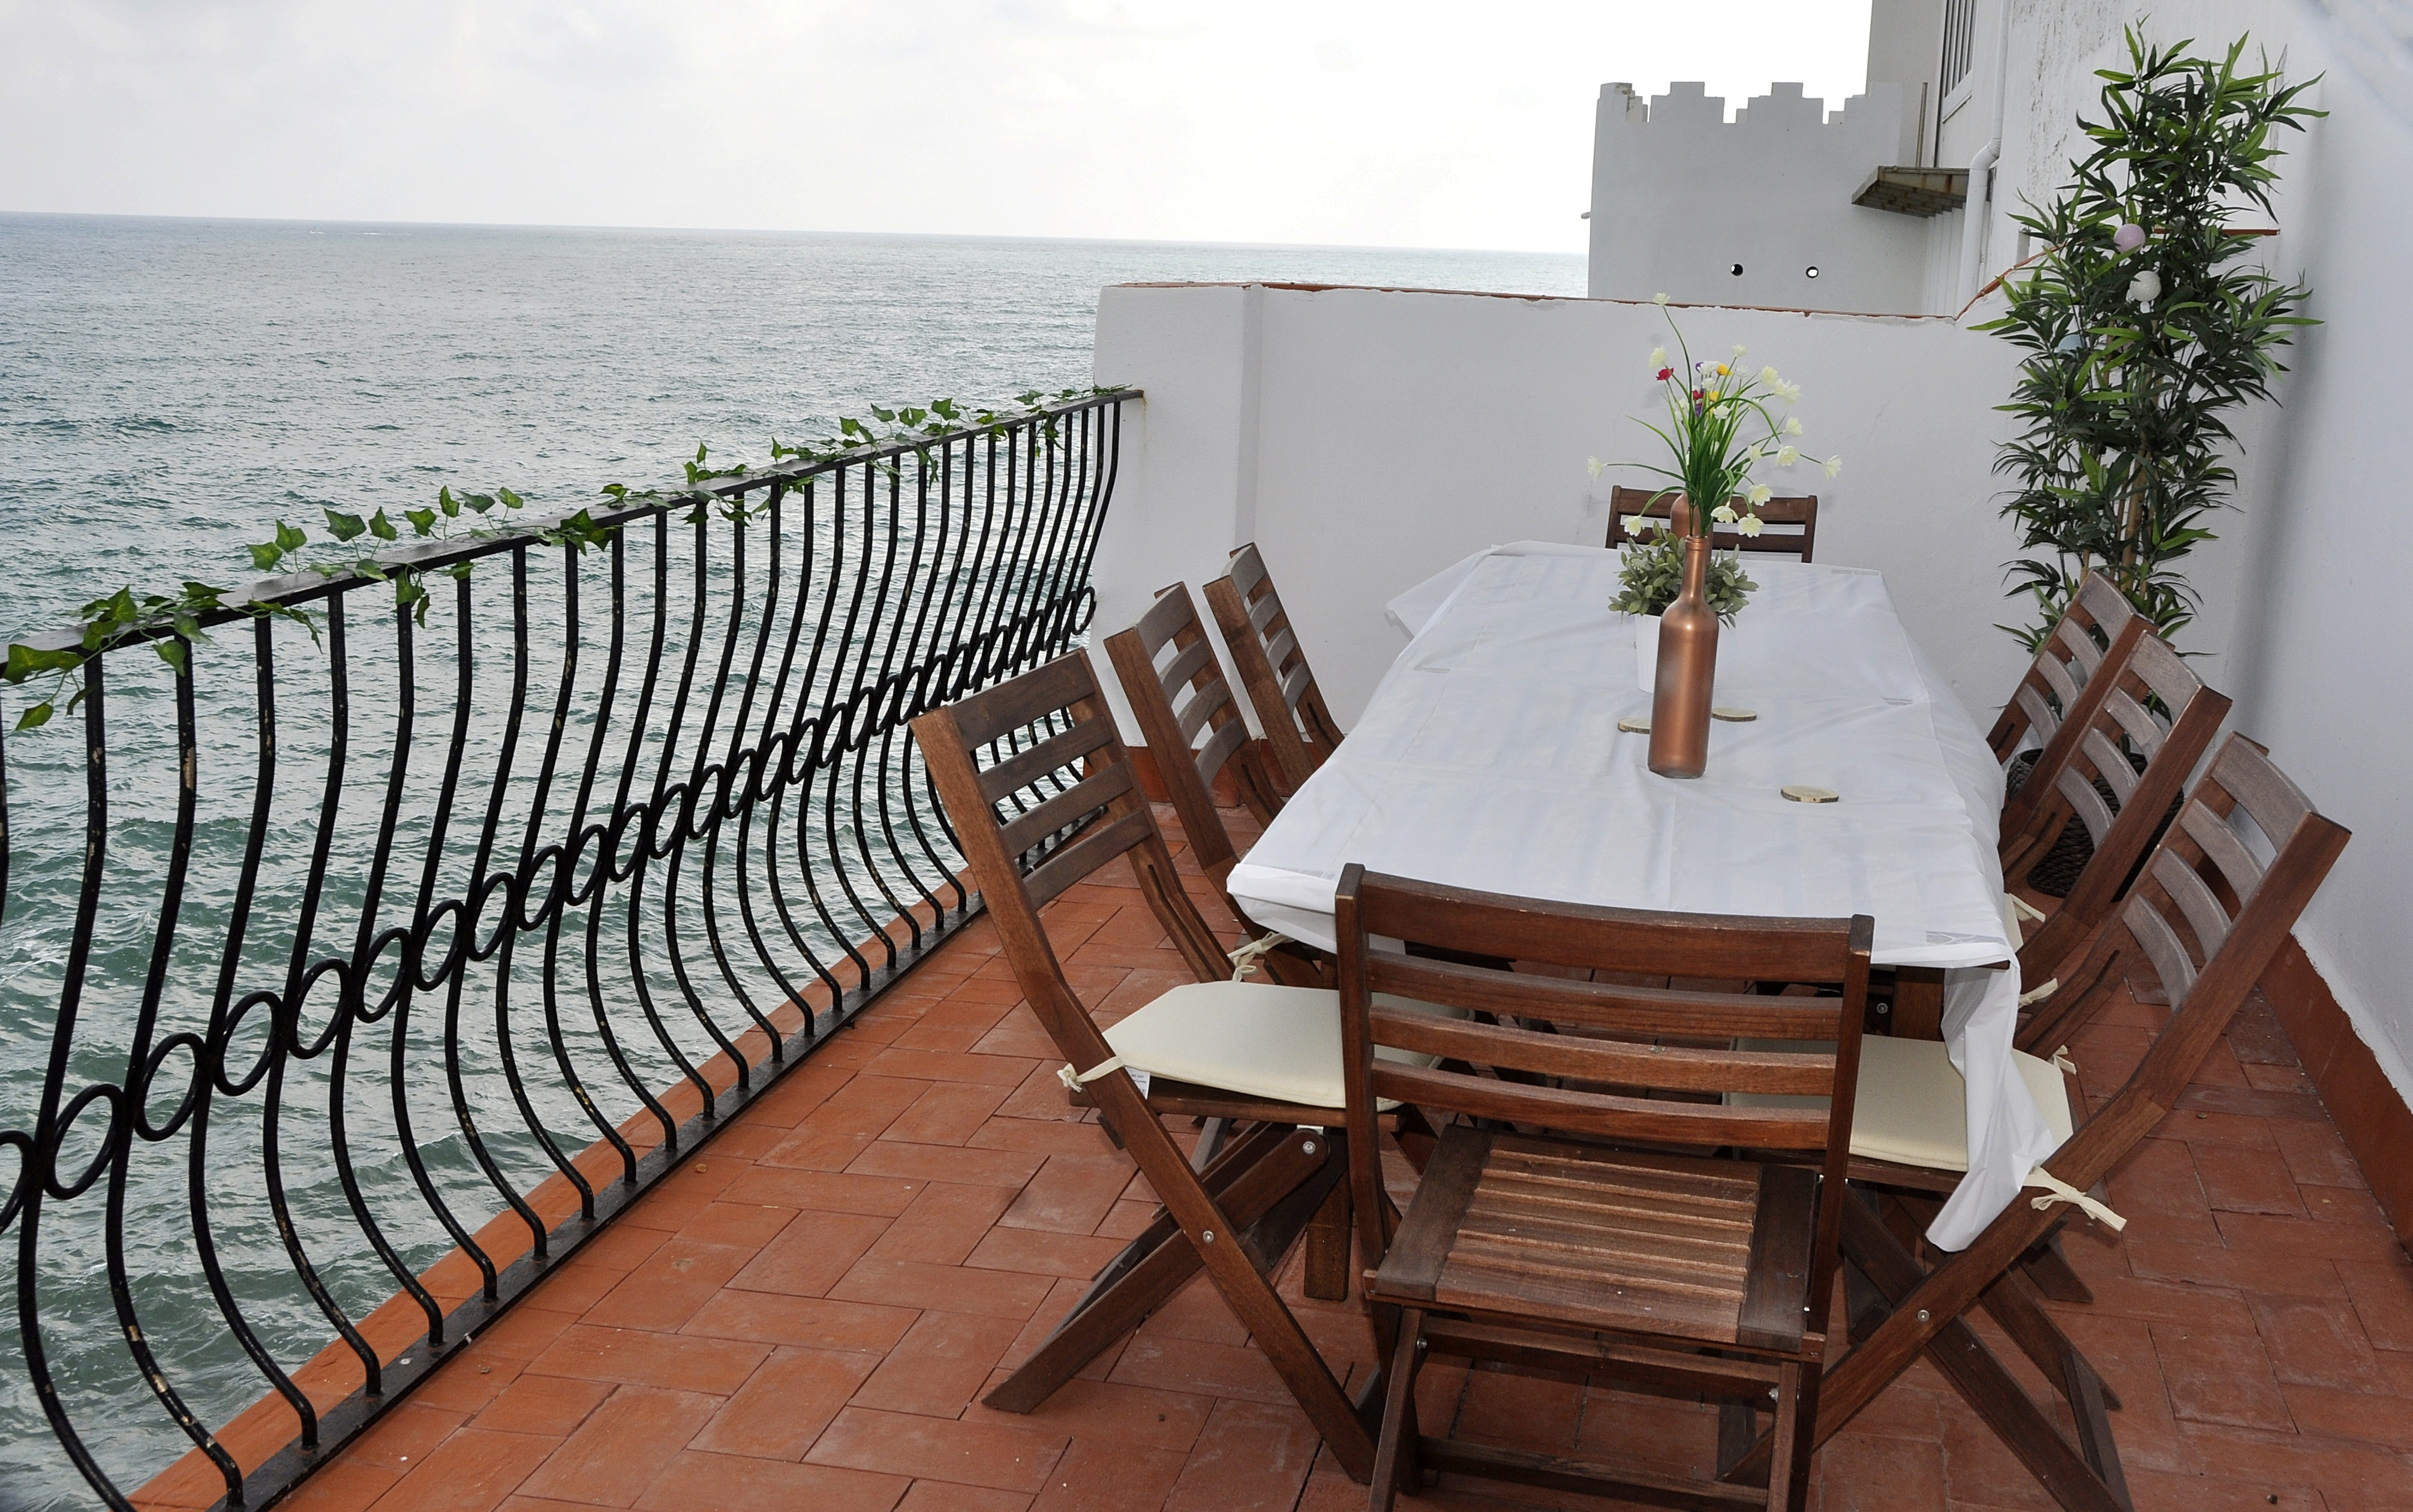 Balcony of the Sea (Sitges)